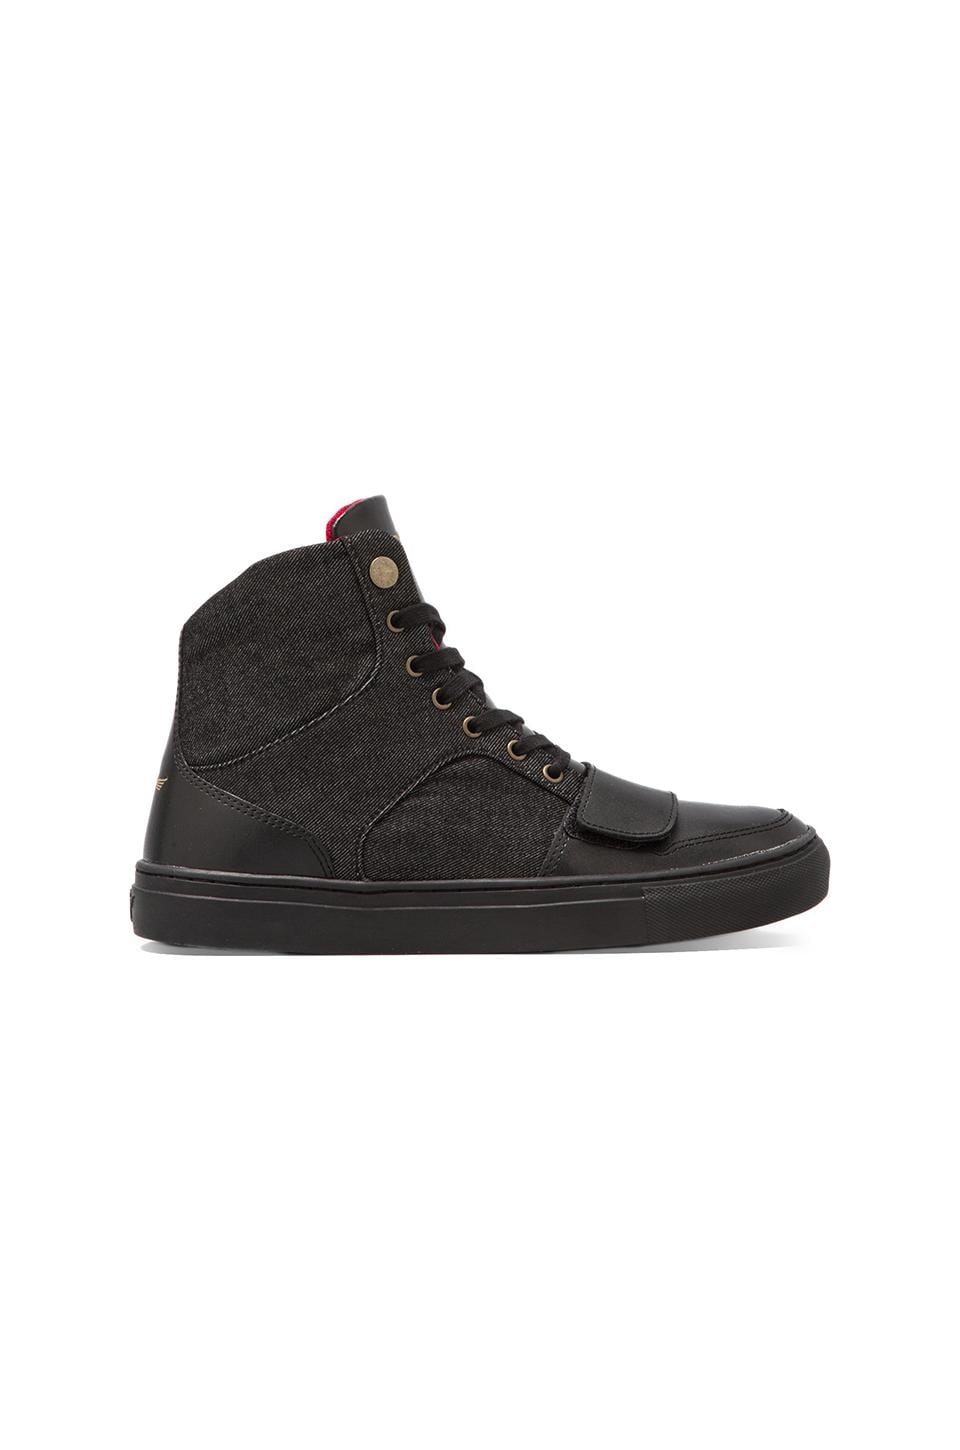 Creative Recreation Cesario X in Black Denim